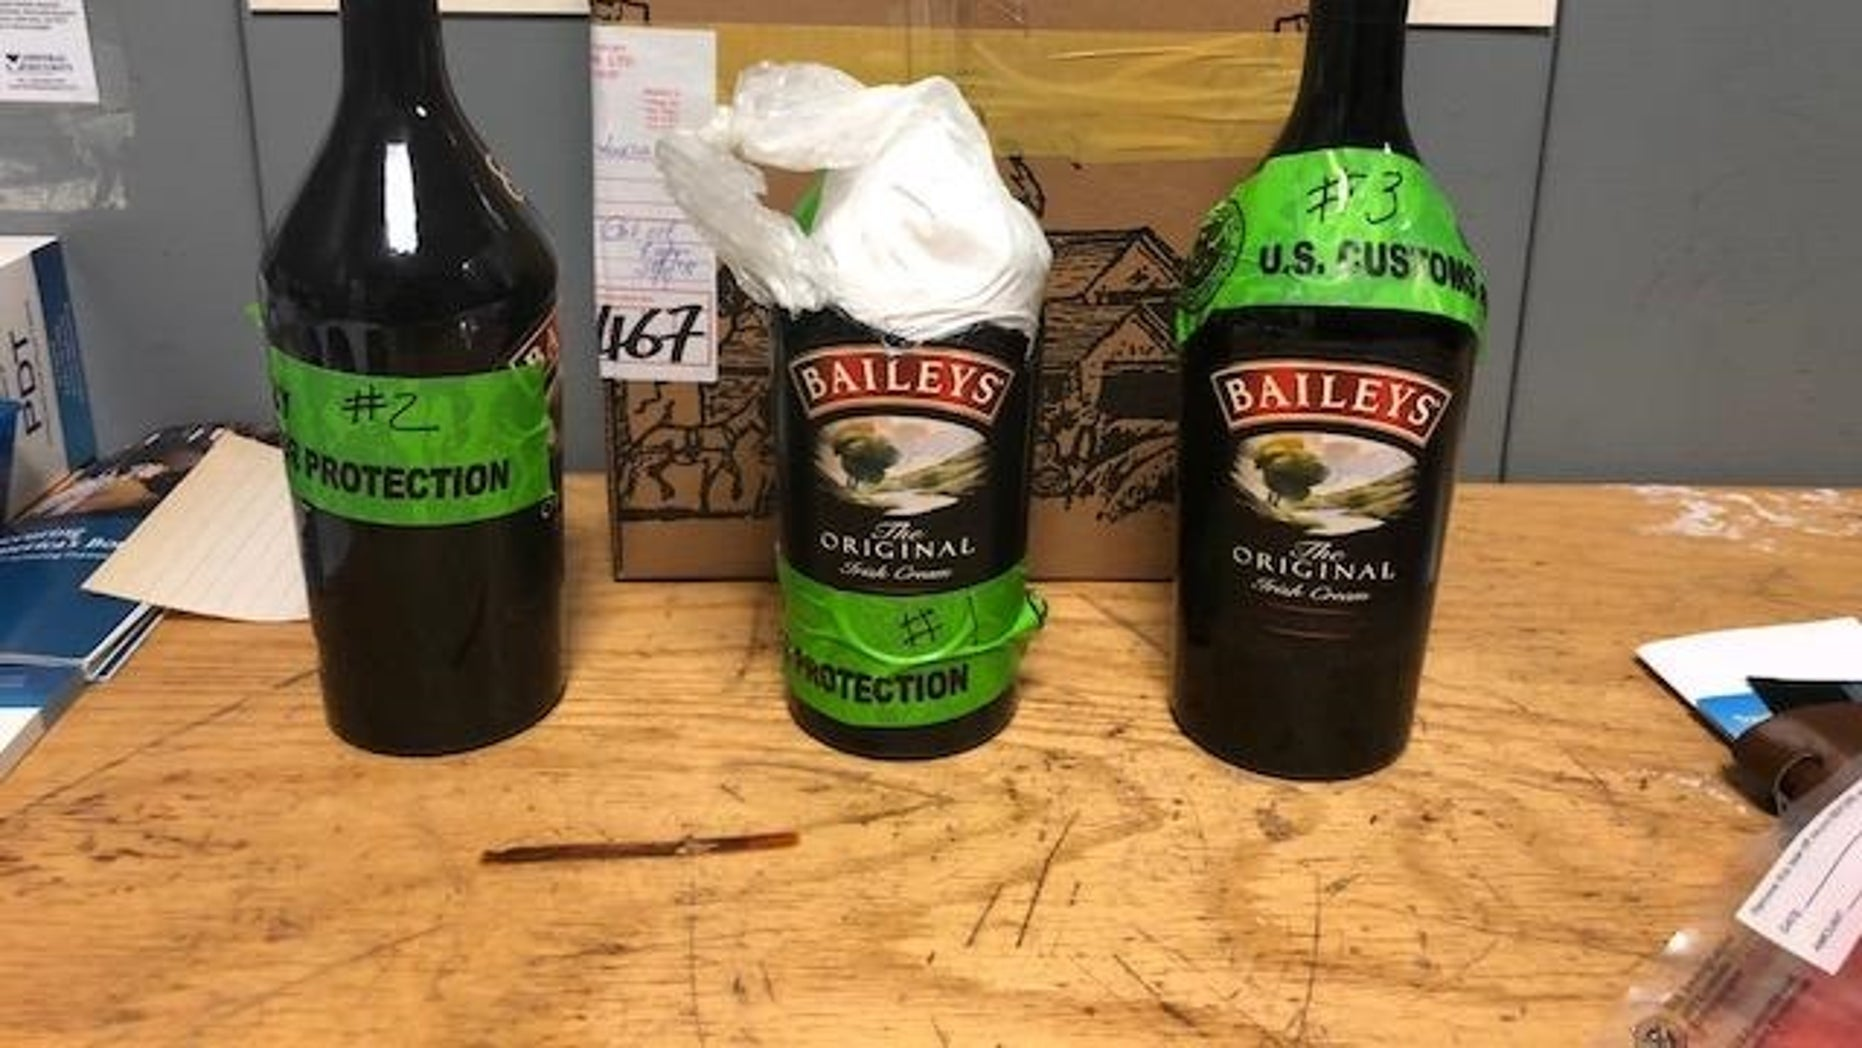 U.S. Customs and Border Protection officers found $115,000 worth of cocaine in Baileys Irish Cream liquor bottles.